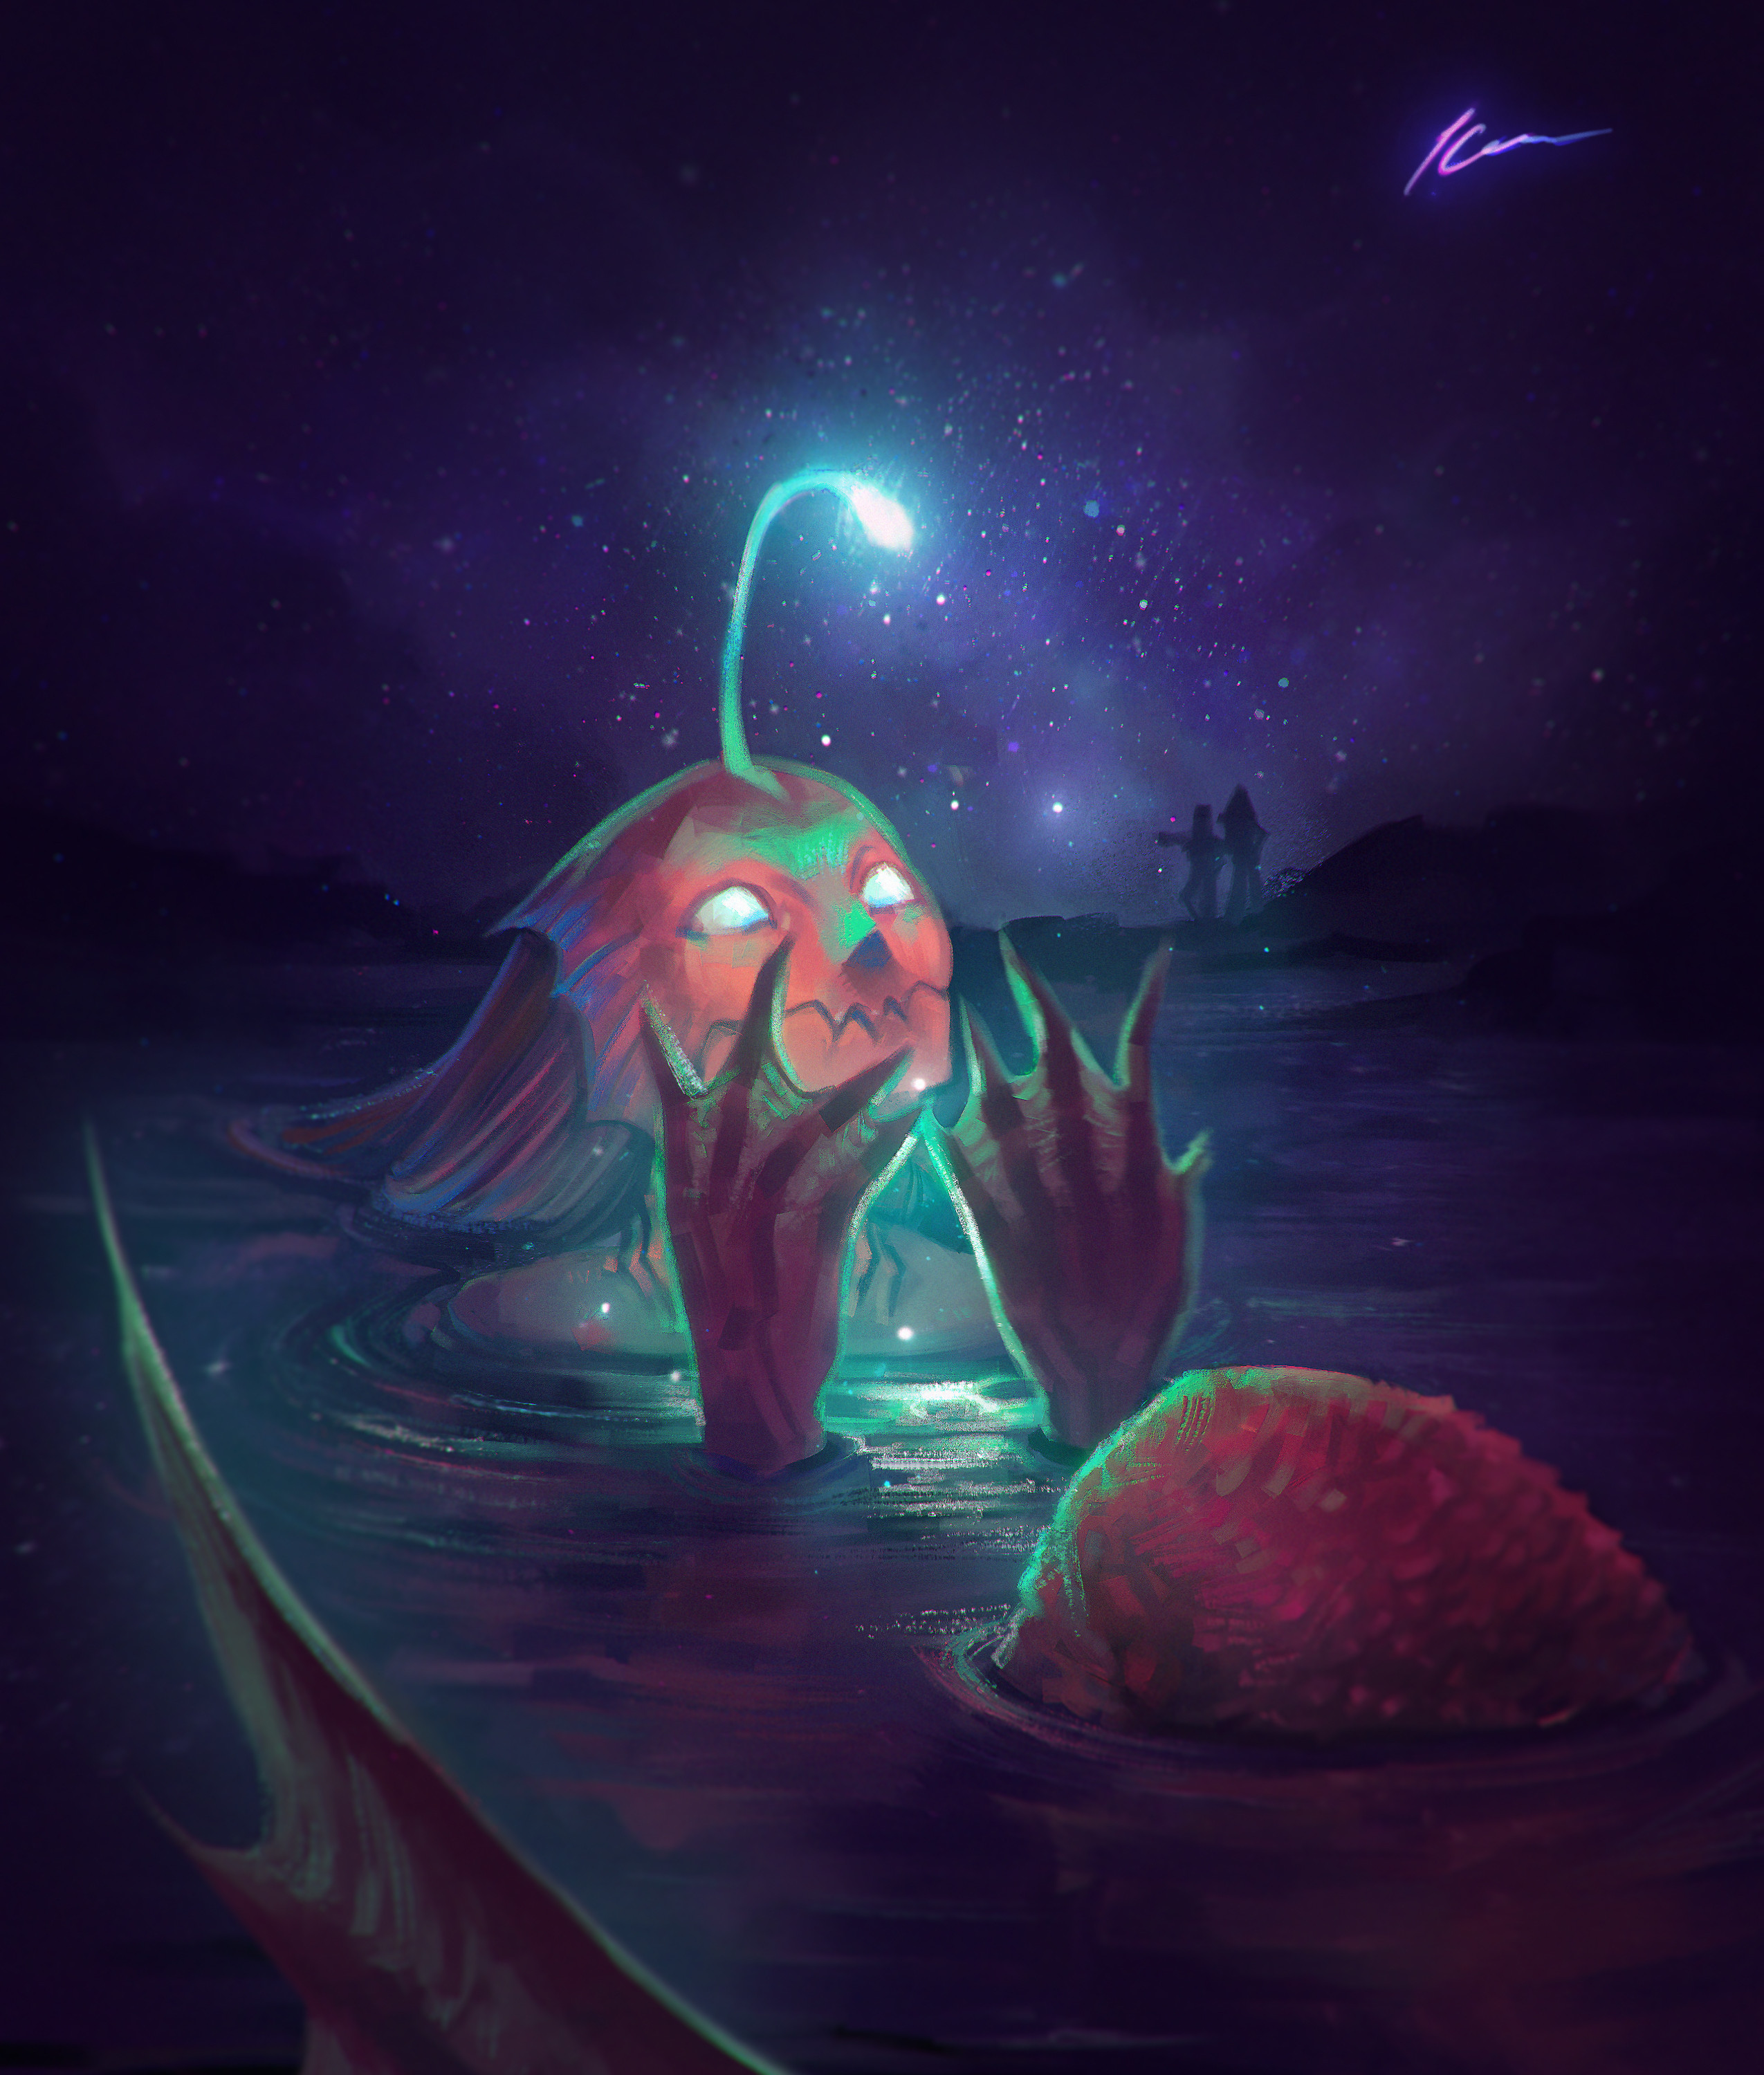 Guiding Light - An angler fish mermaid realizes she has been carrying her own star